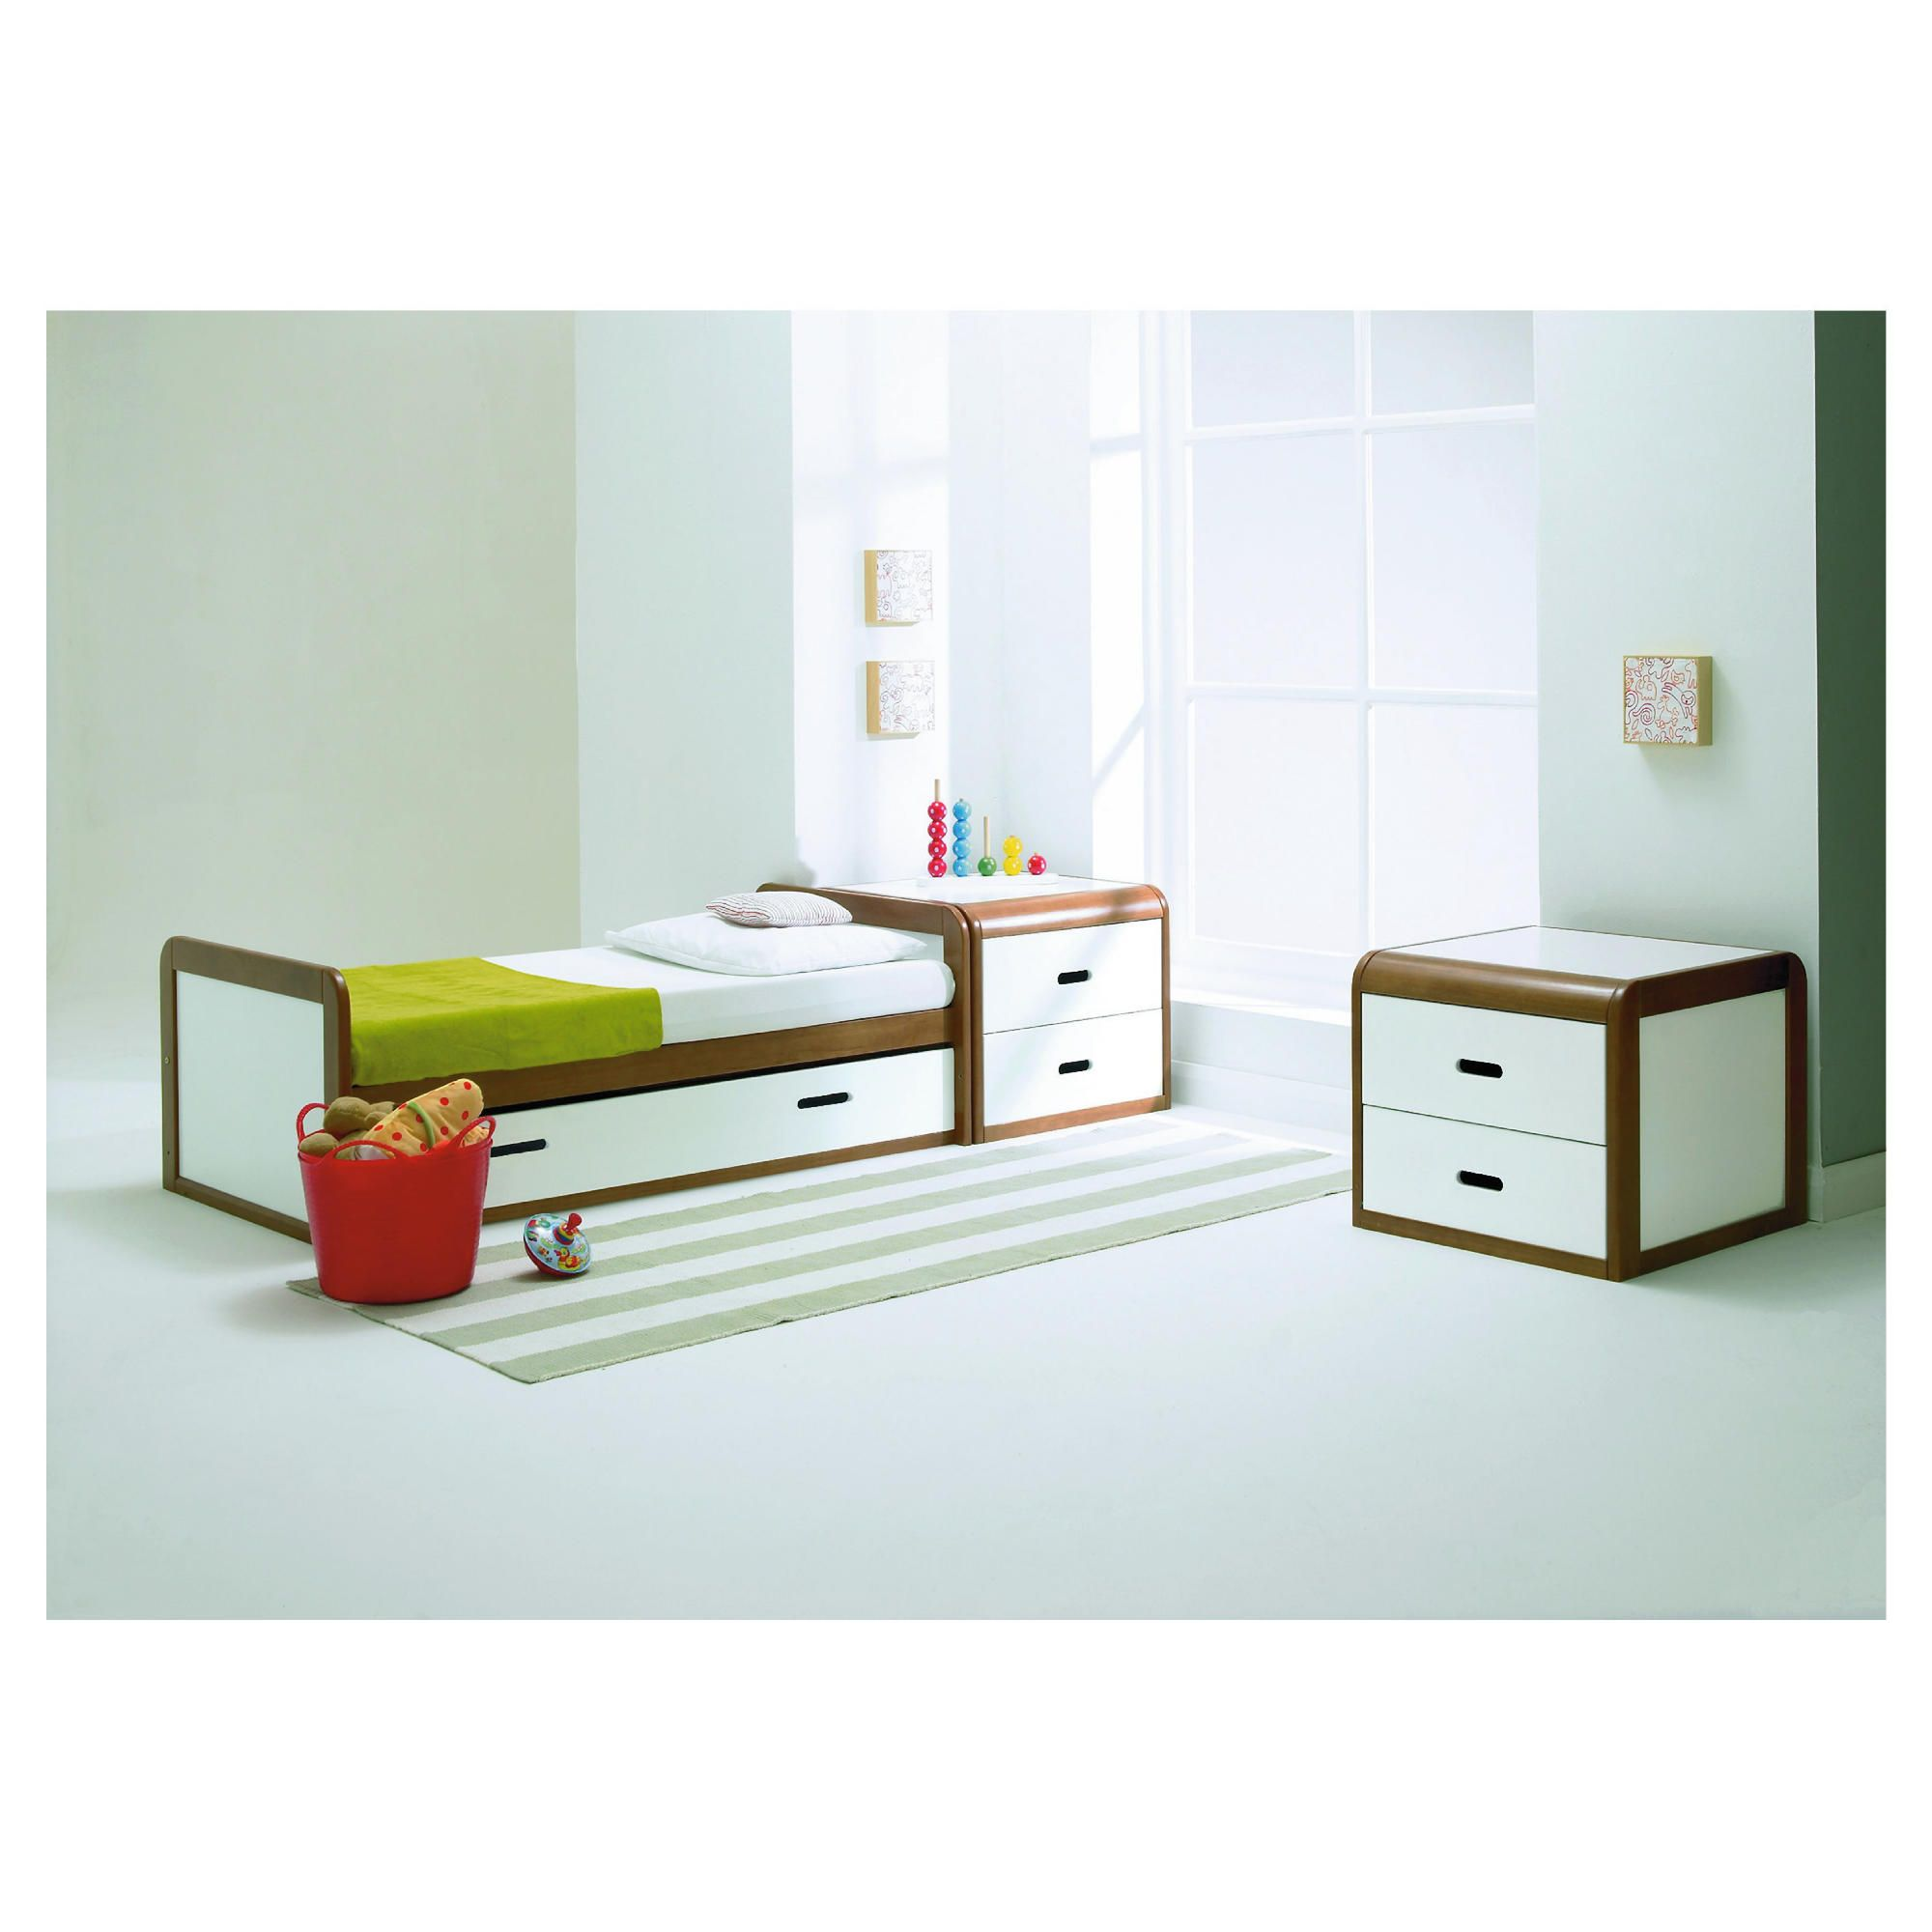 East Coast Rio 2 Piece Nursery Room Set, Cot bed & Chest, Cocoa and White at Tesco Direct